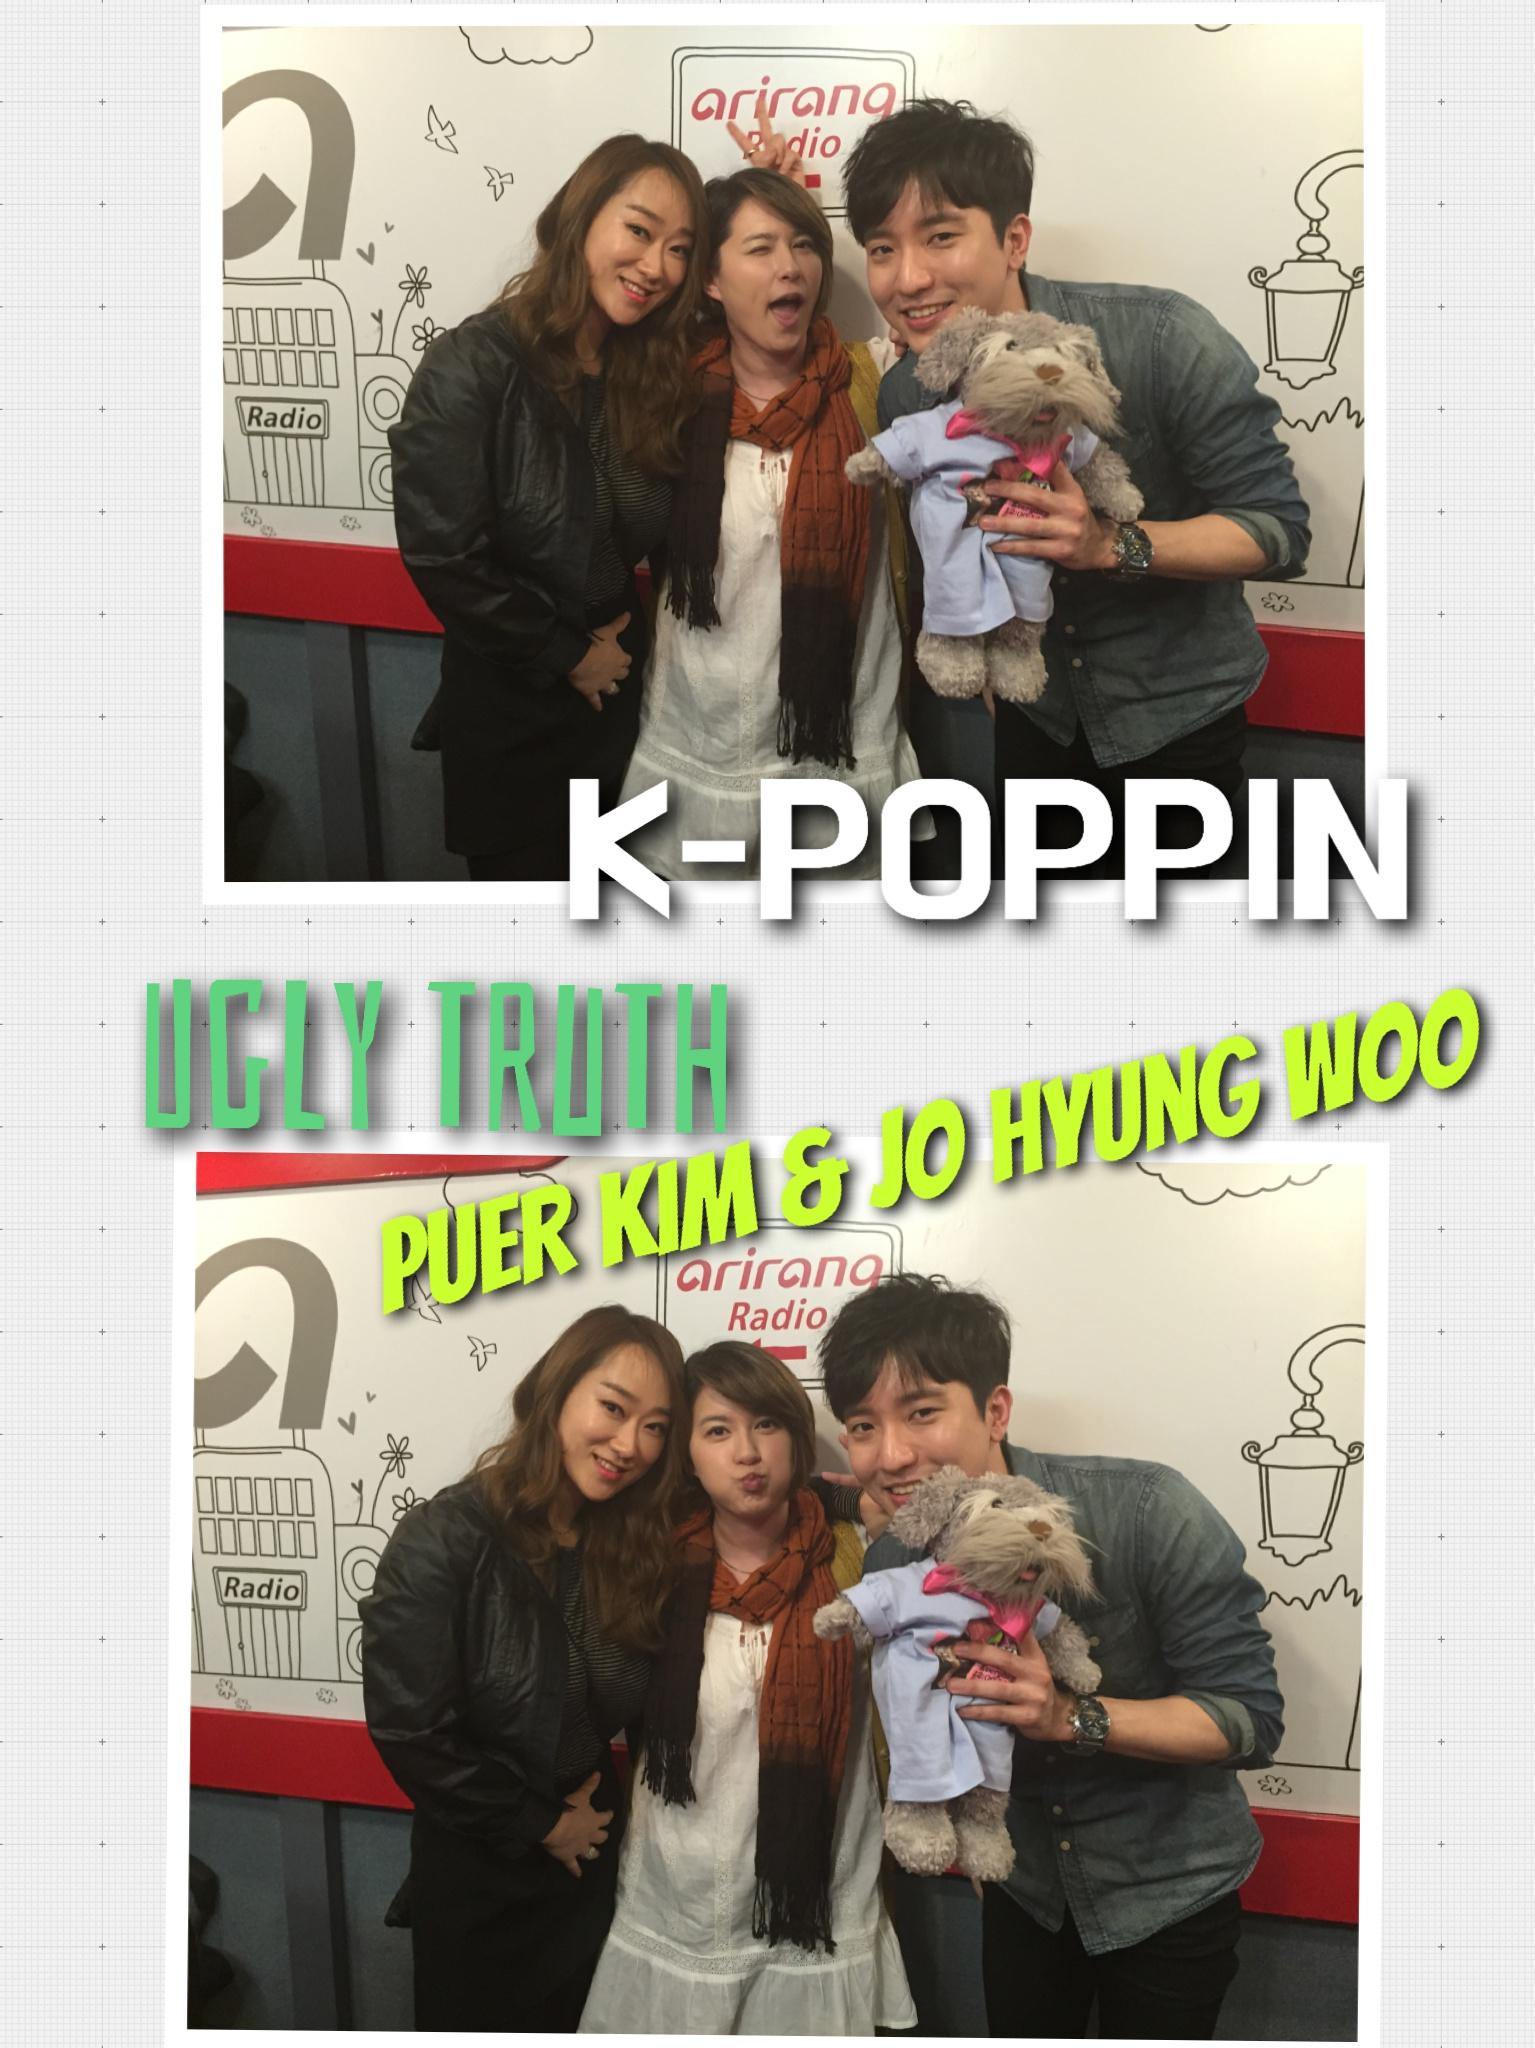 Ugly Truth with Puer Kim & Jo Hyung Woo